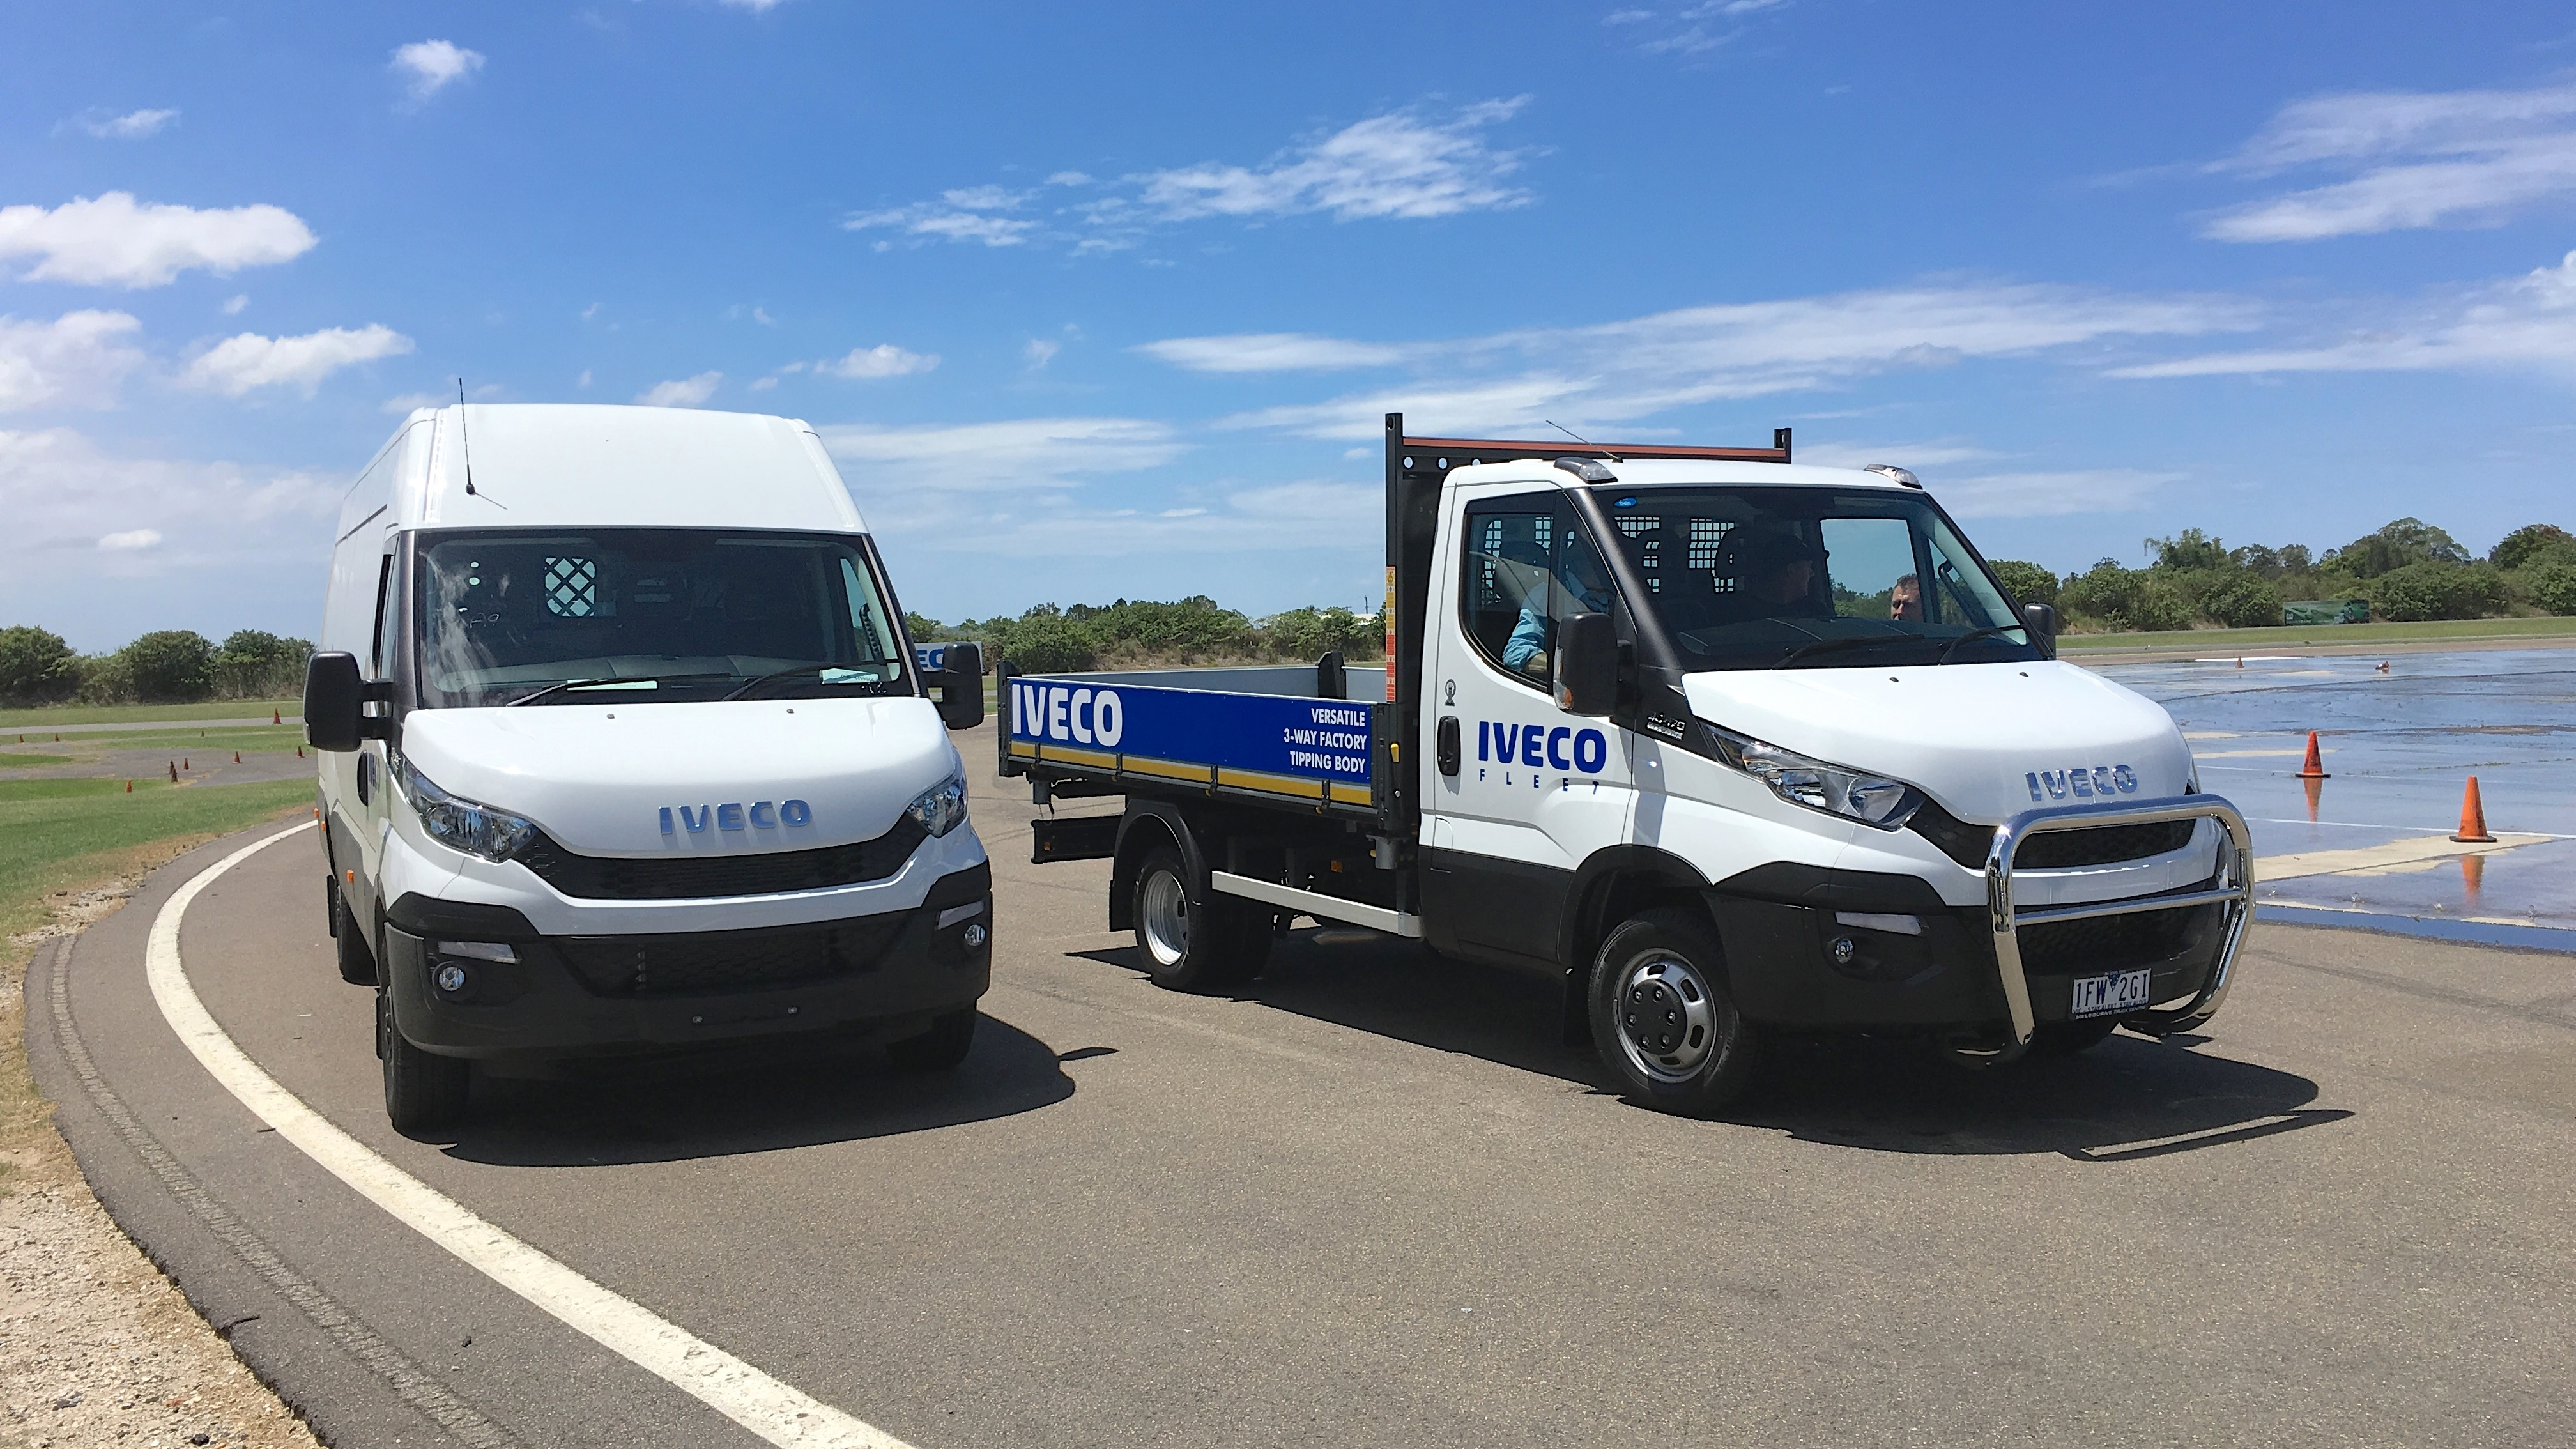 2016 iveco daily pricing and specifications photos 1 of 4. Black Bedroom Furniture Sets. Home Design Ideas